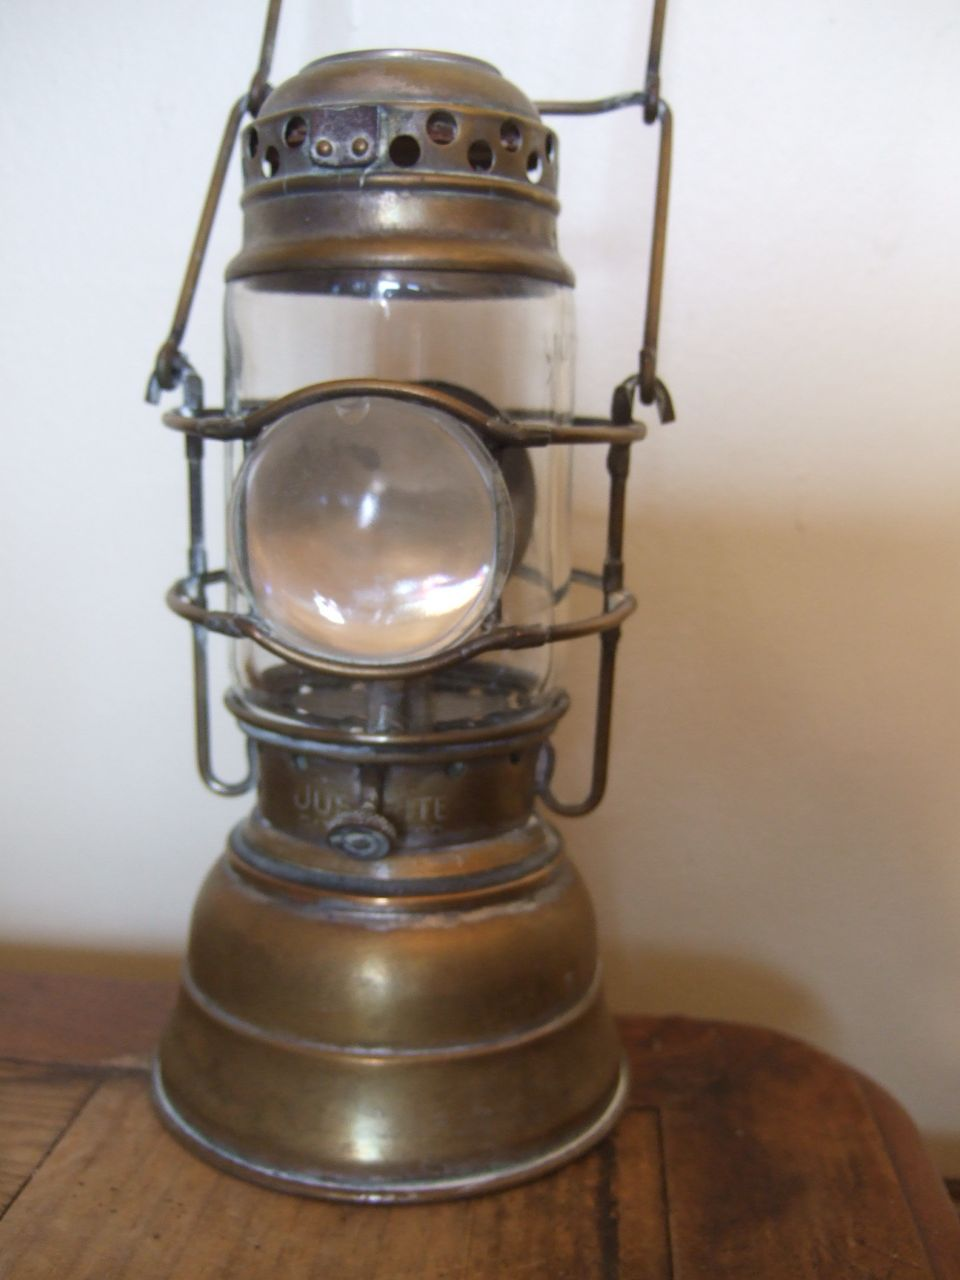 Antique Justrite Lantern Miner S Hand Lamp With Bullseye Reflector Oil Lamps Lamp Old Lanterns